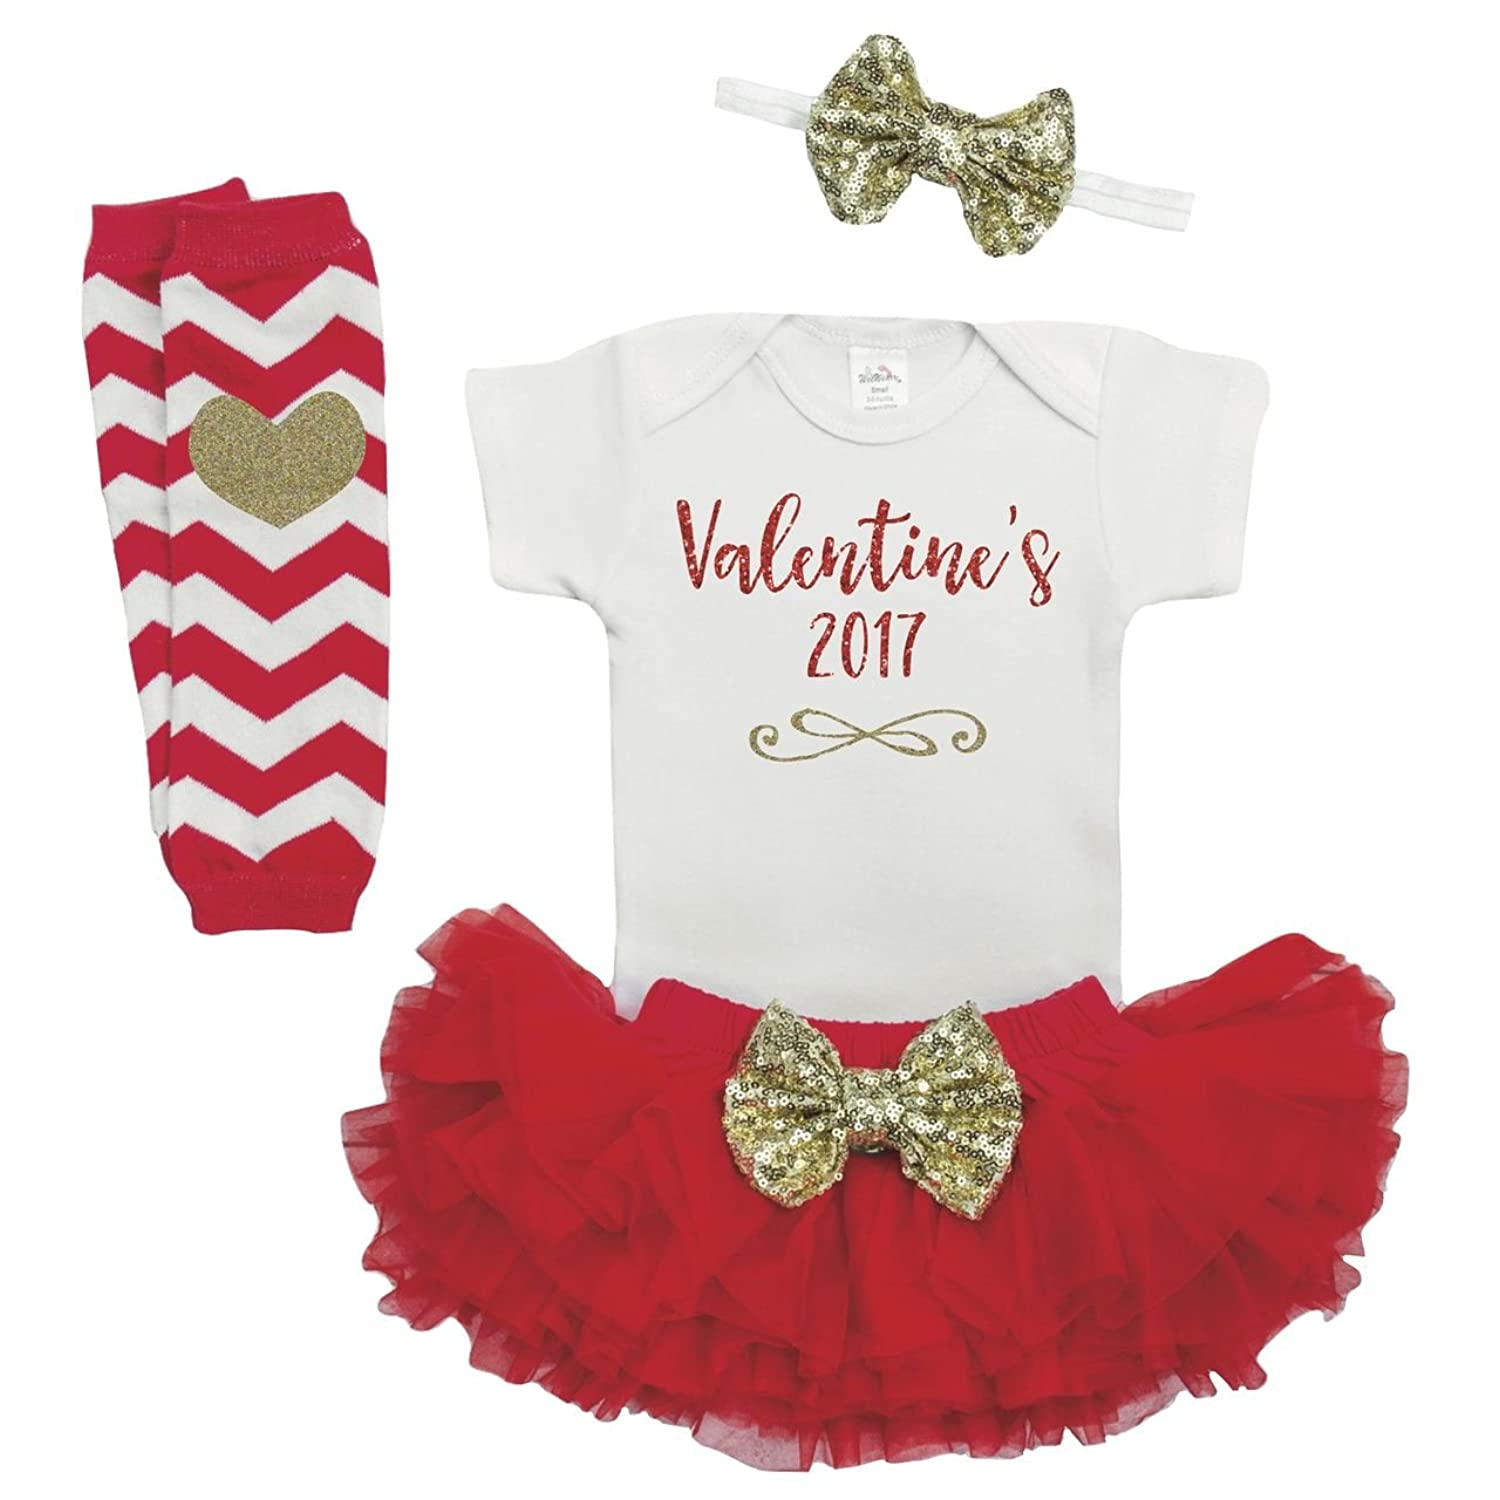 amazoncom baby girl valentines outfit first valentines day outfit girl newborn valentines clothing - Valentines Baby Outfit